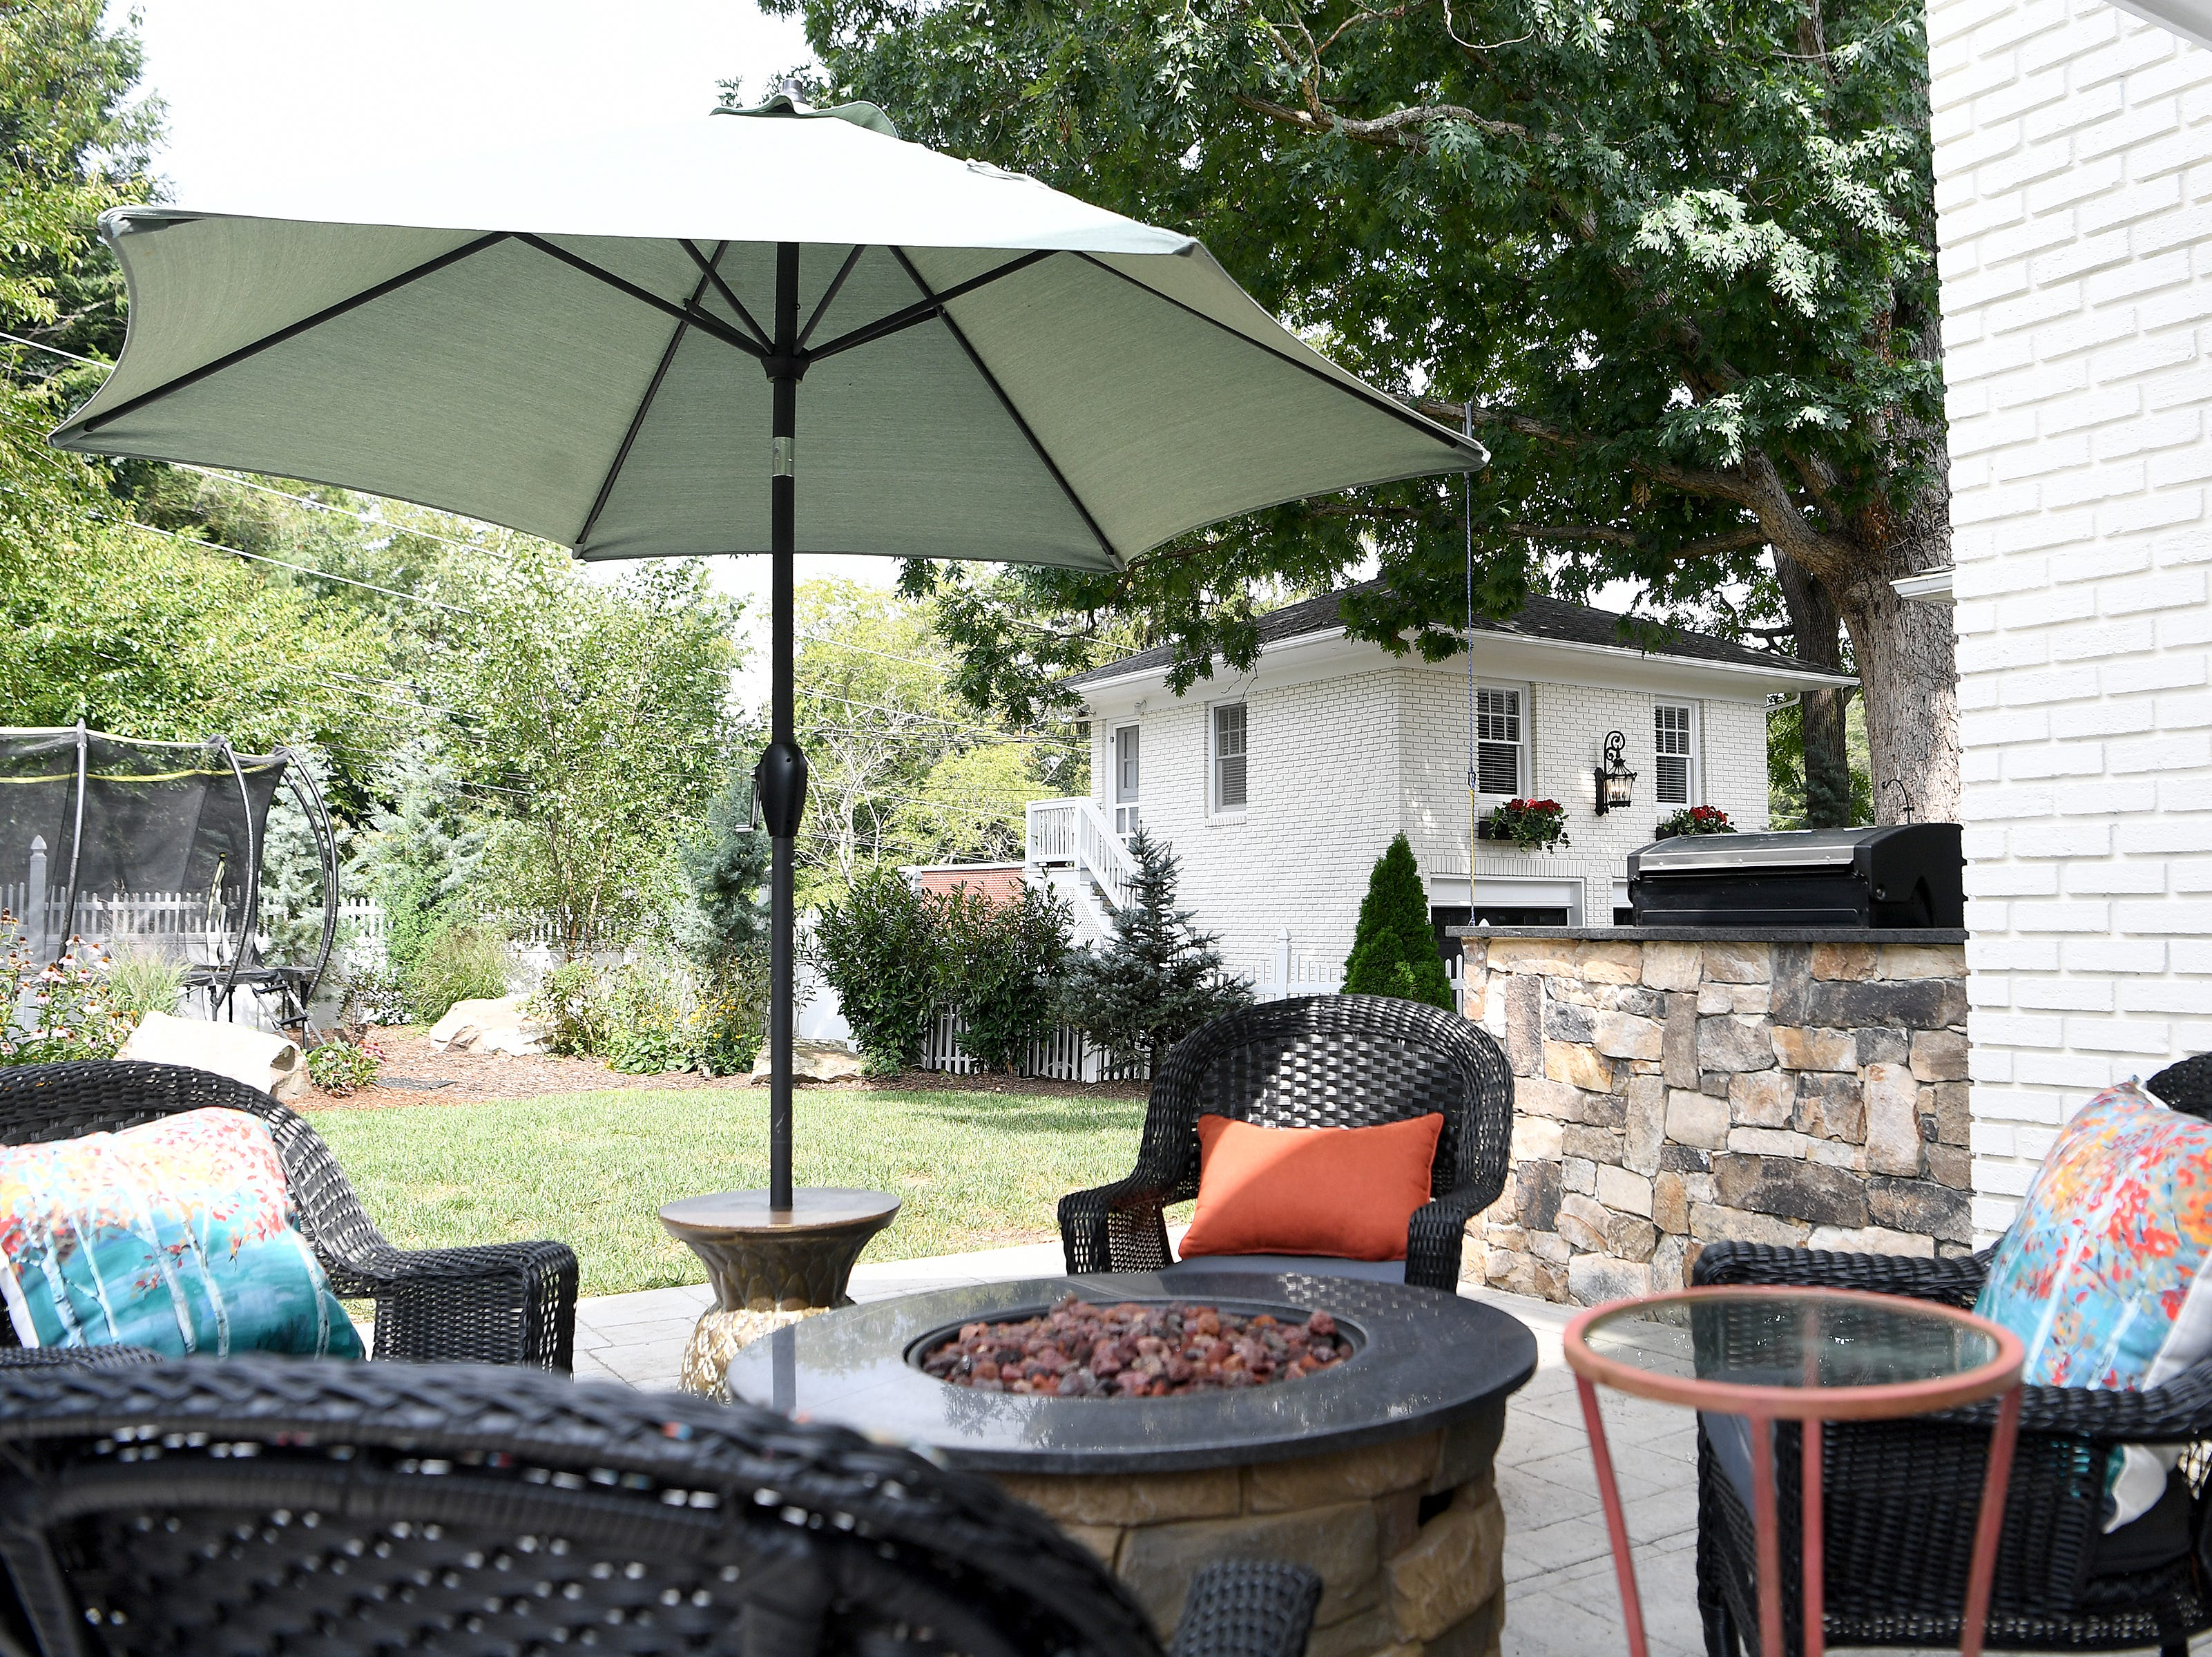 The backyard of the Bryant family's historic North Asheville home features plenty of room for entertaining with a fire table and grill. Also shown is the carriage house, or detached garage, which matches the main home architecturally.